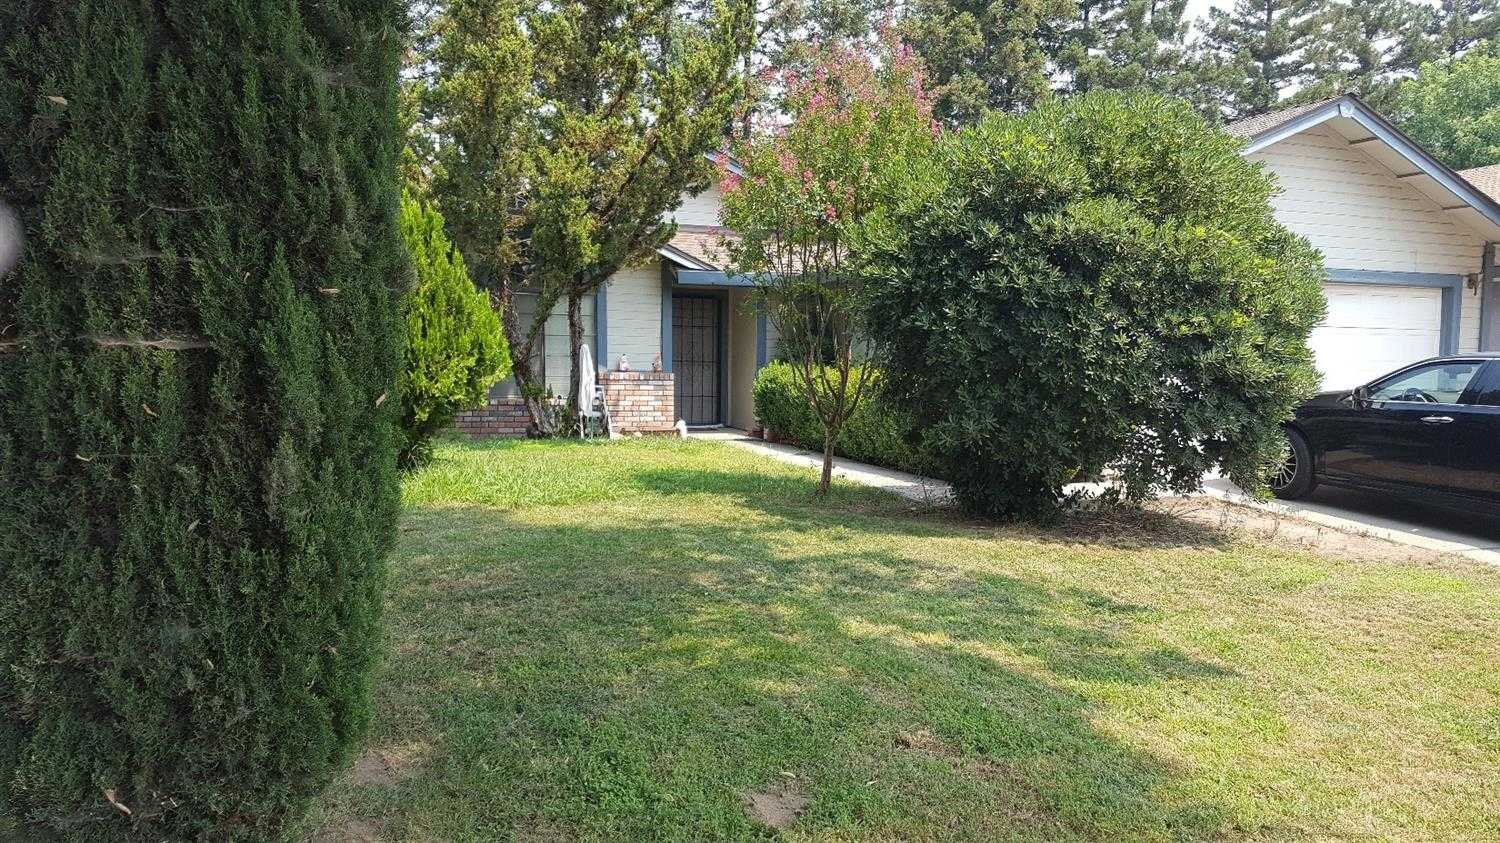 $289,000 - 3Br/2Ba -  for Sale in Olympic Village, Modesto